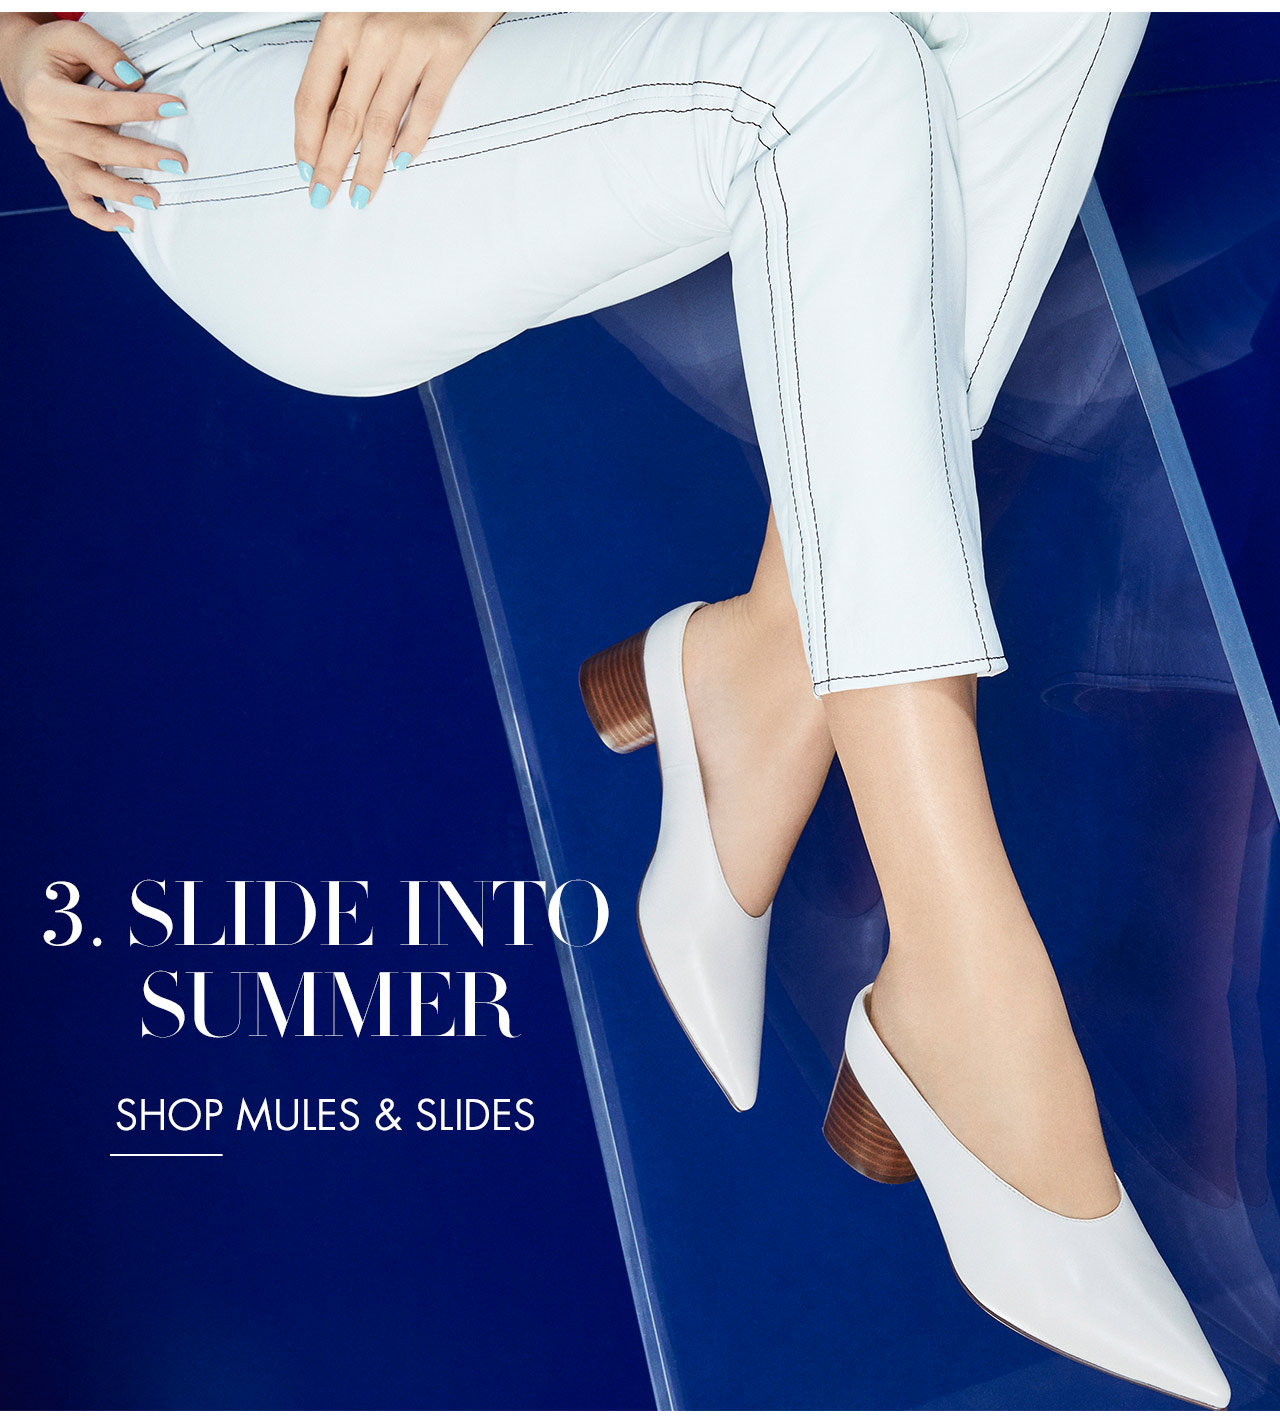 Slide Into Summer - Shop Mules & Slides